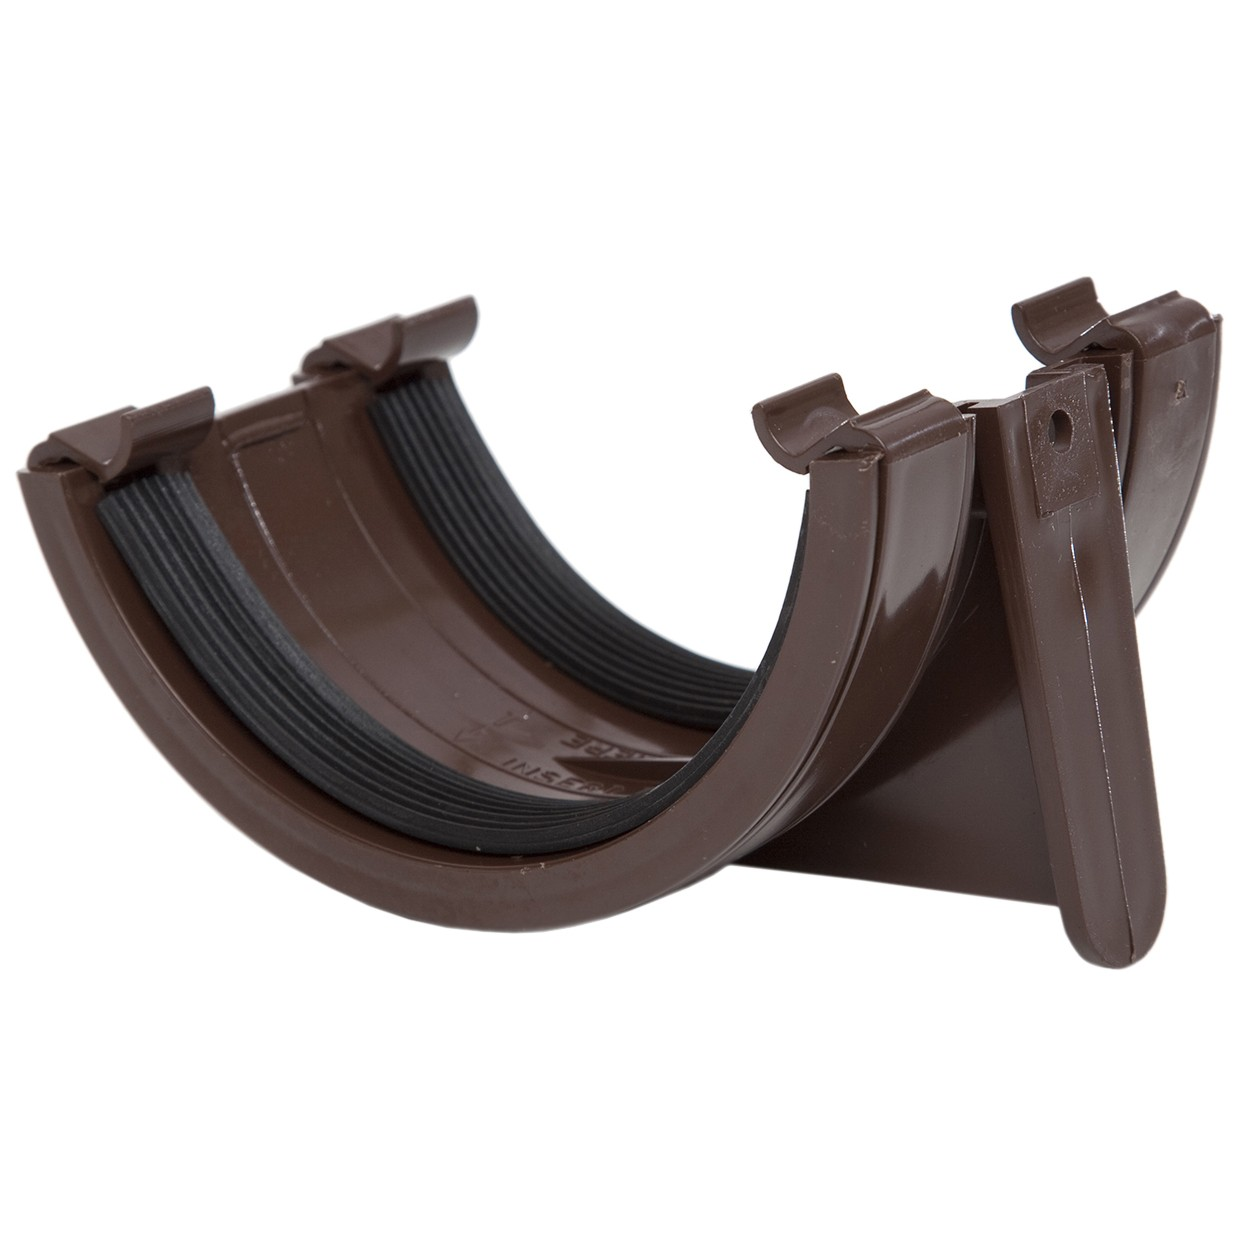 Rr102br Polypipe 112mm Half Round Gutter Union Bracket Brown